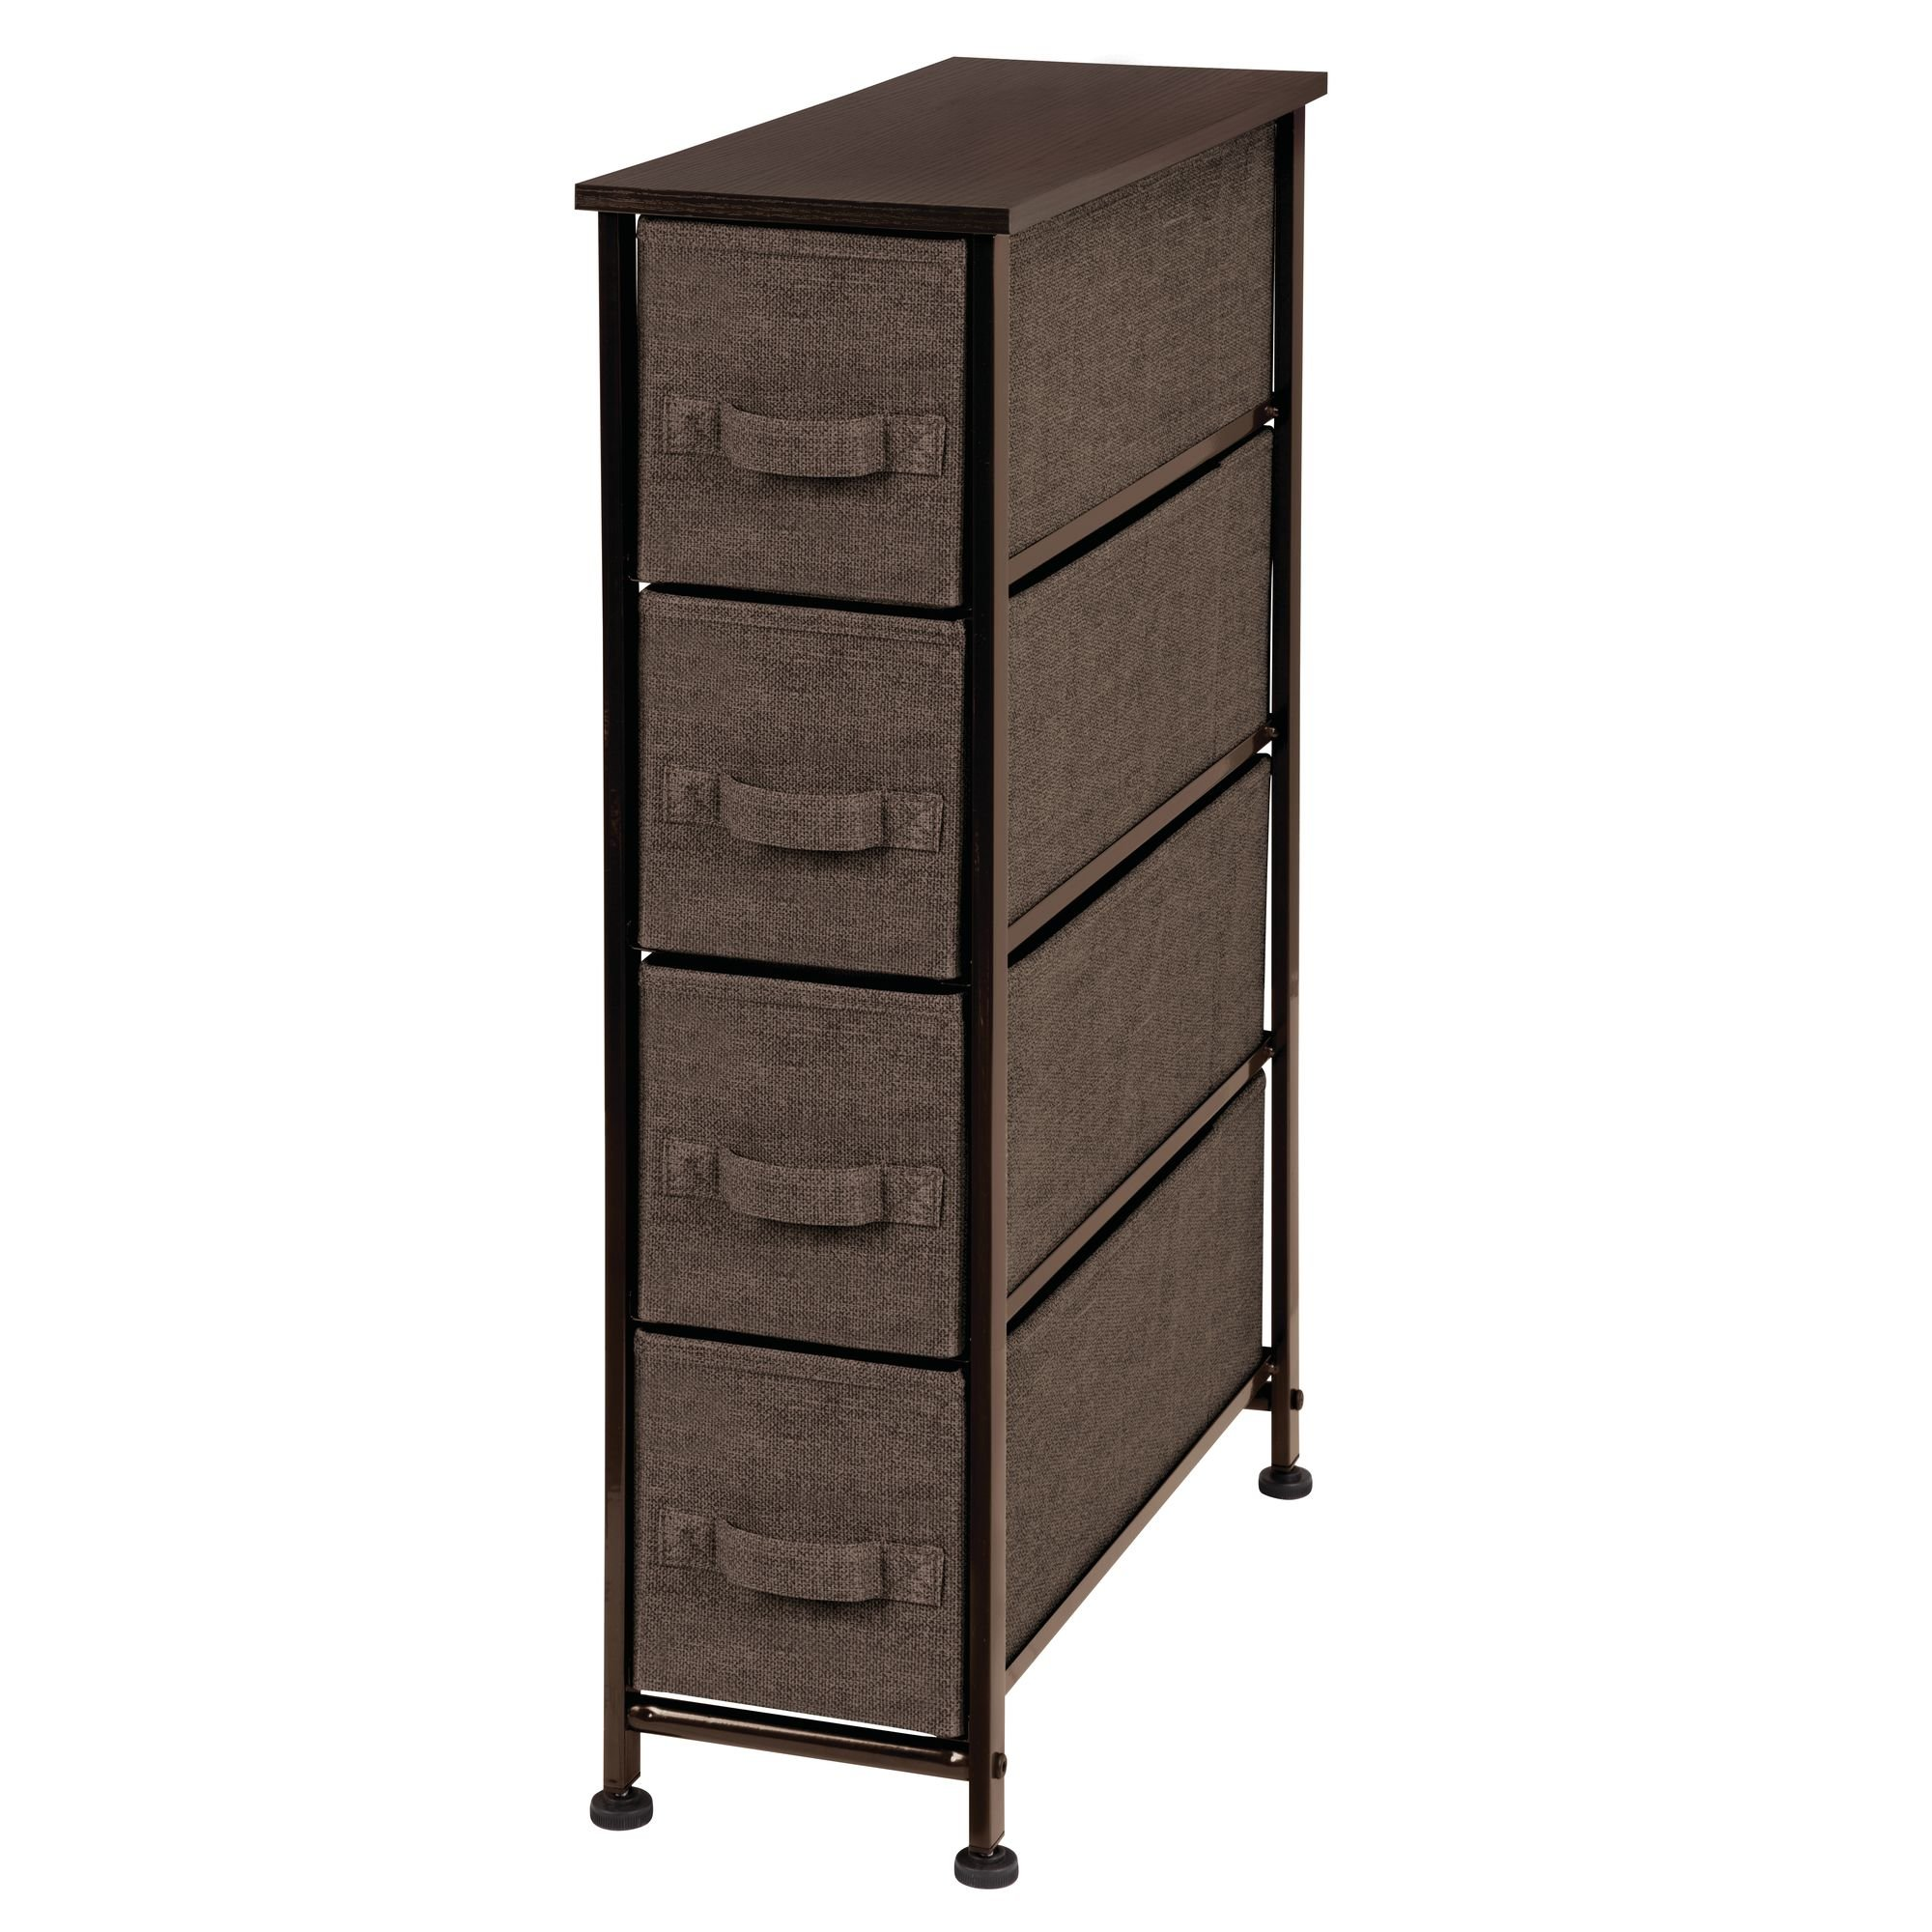 Mdesign fabric narrow 4 drawer dresser and storage - Shallow dressers for small spaces ...